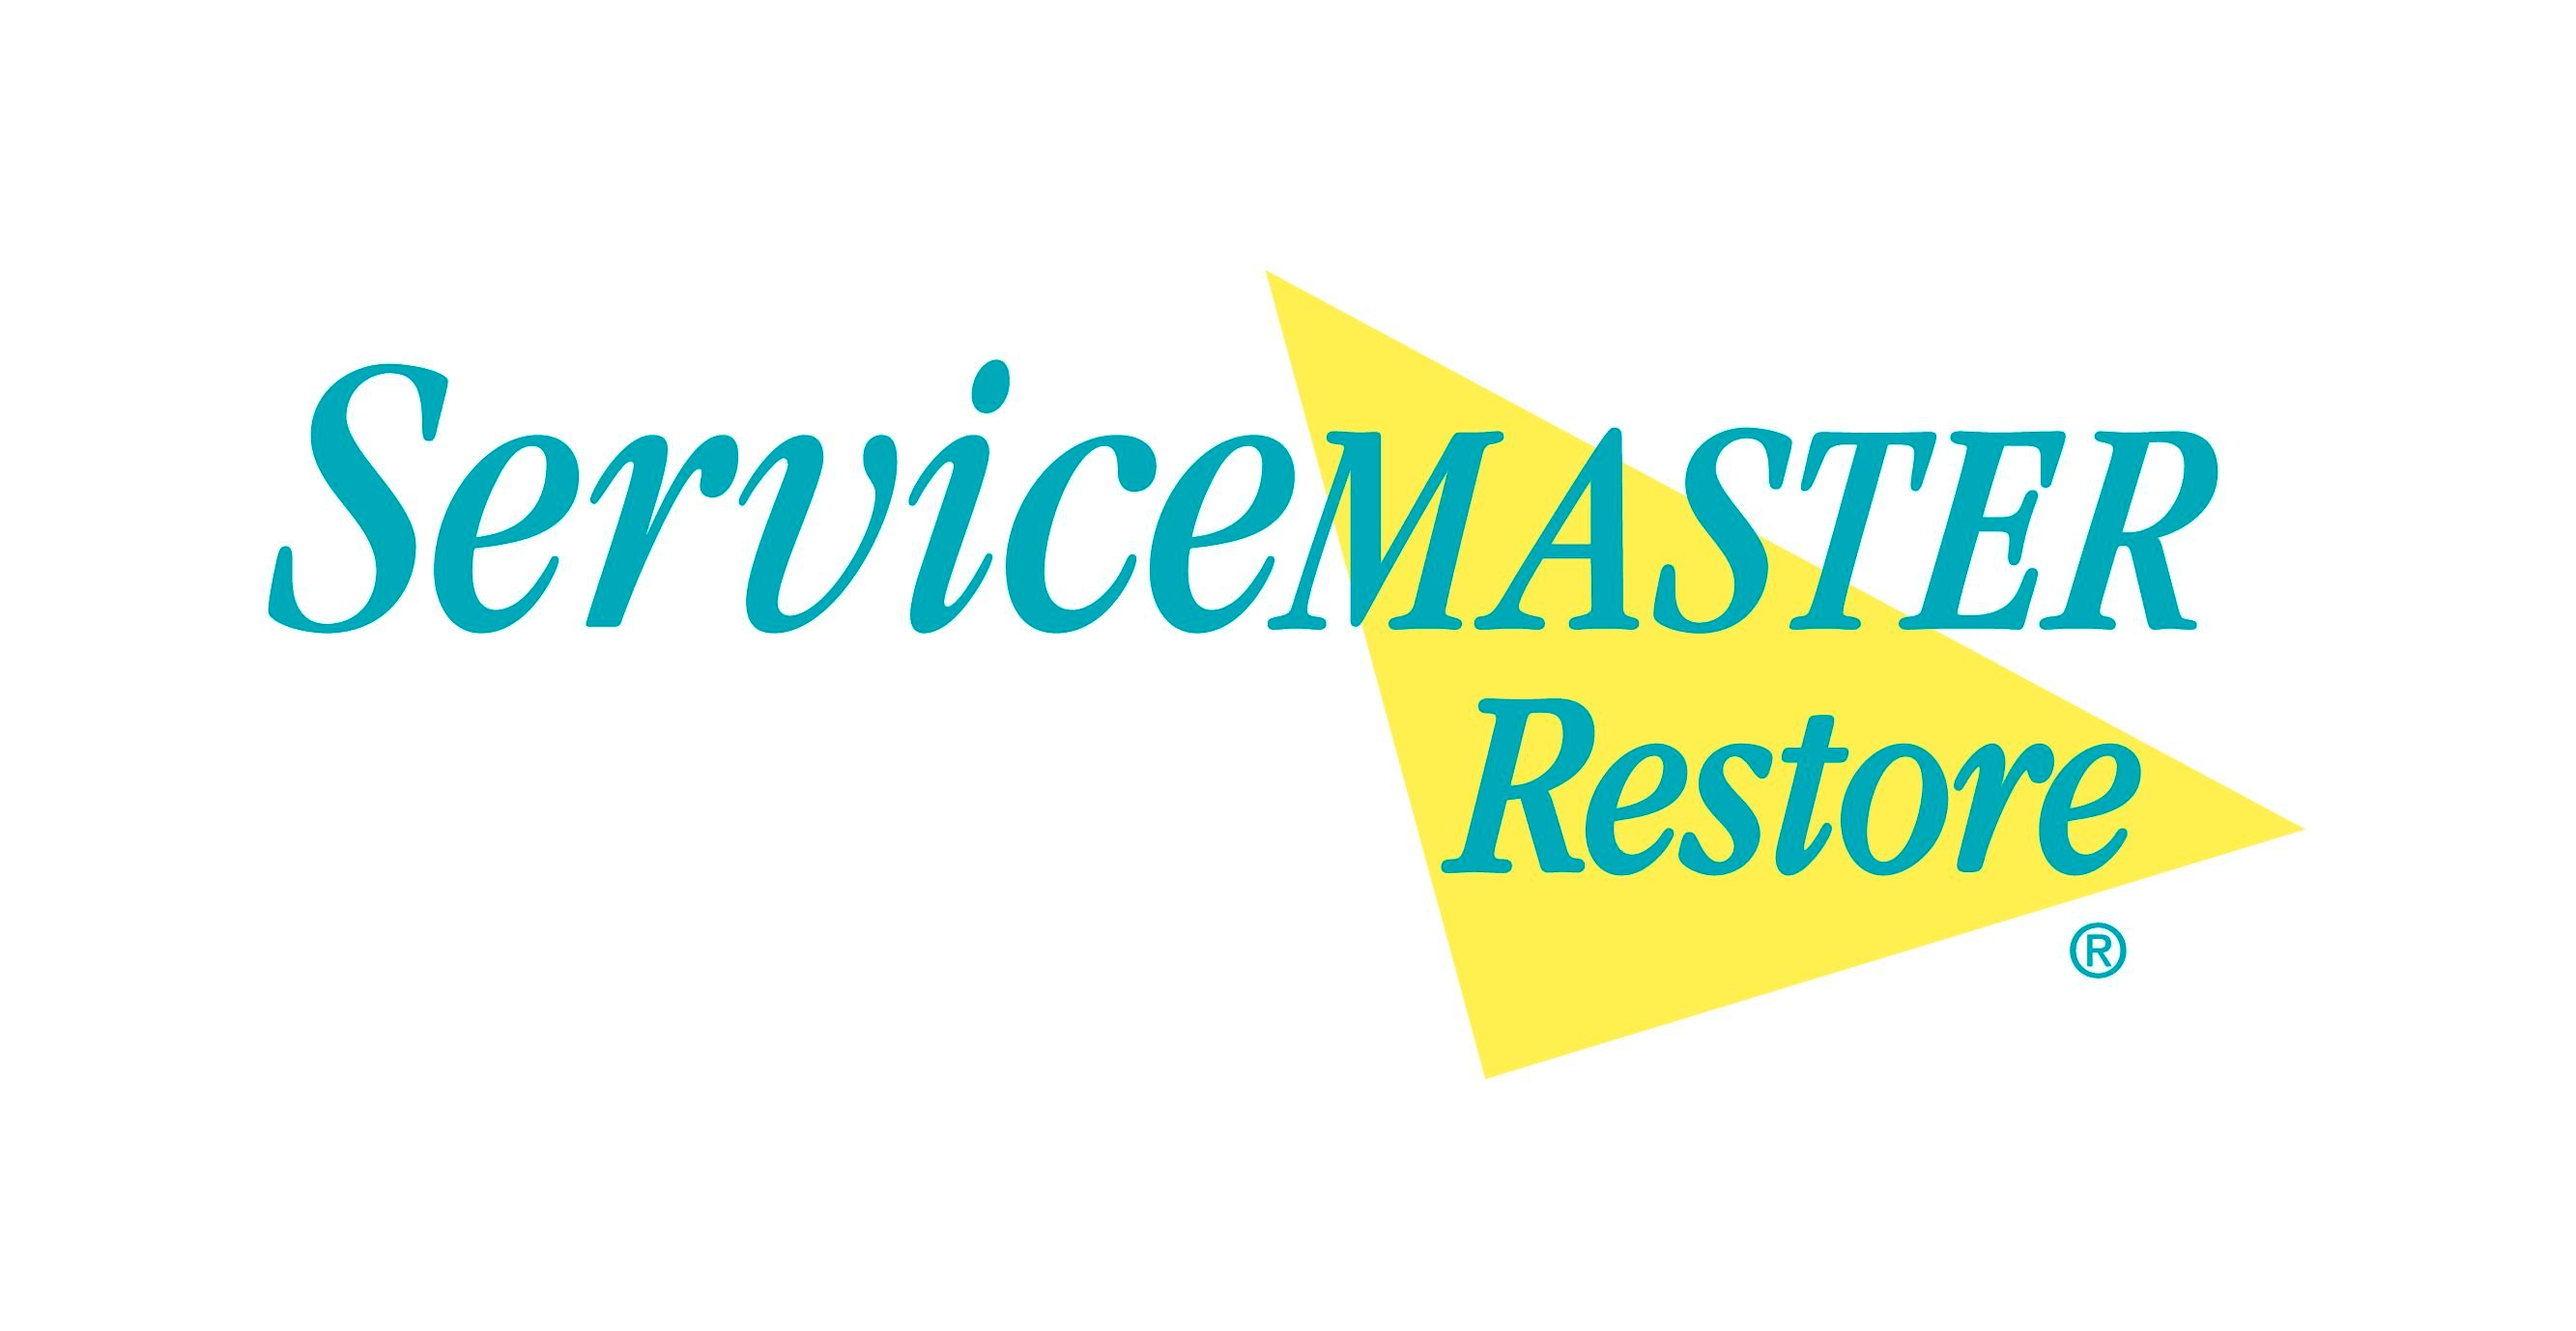 Fire and Water Damage Restoration - ServiceMaster Restore